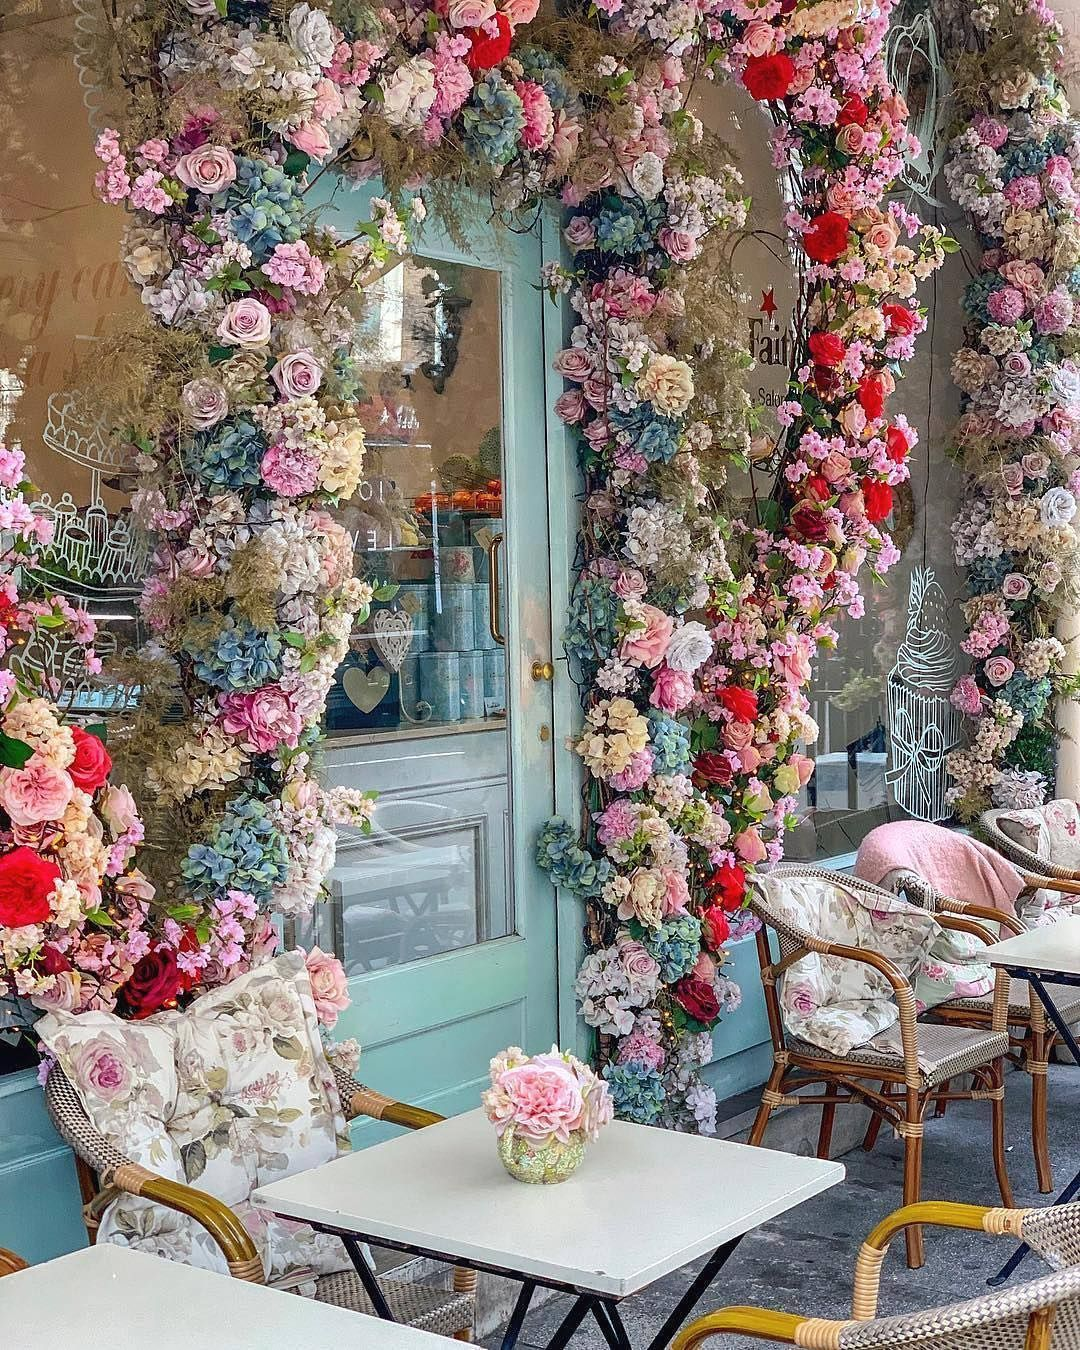 New] The 10 Best Travel (with Pictures) - #floral #coffee #shops #cafeinteriors #floral #cafe #cafe… | Flower iphone wallpaper, Shop vintage decor, Pretty flowers